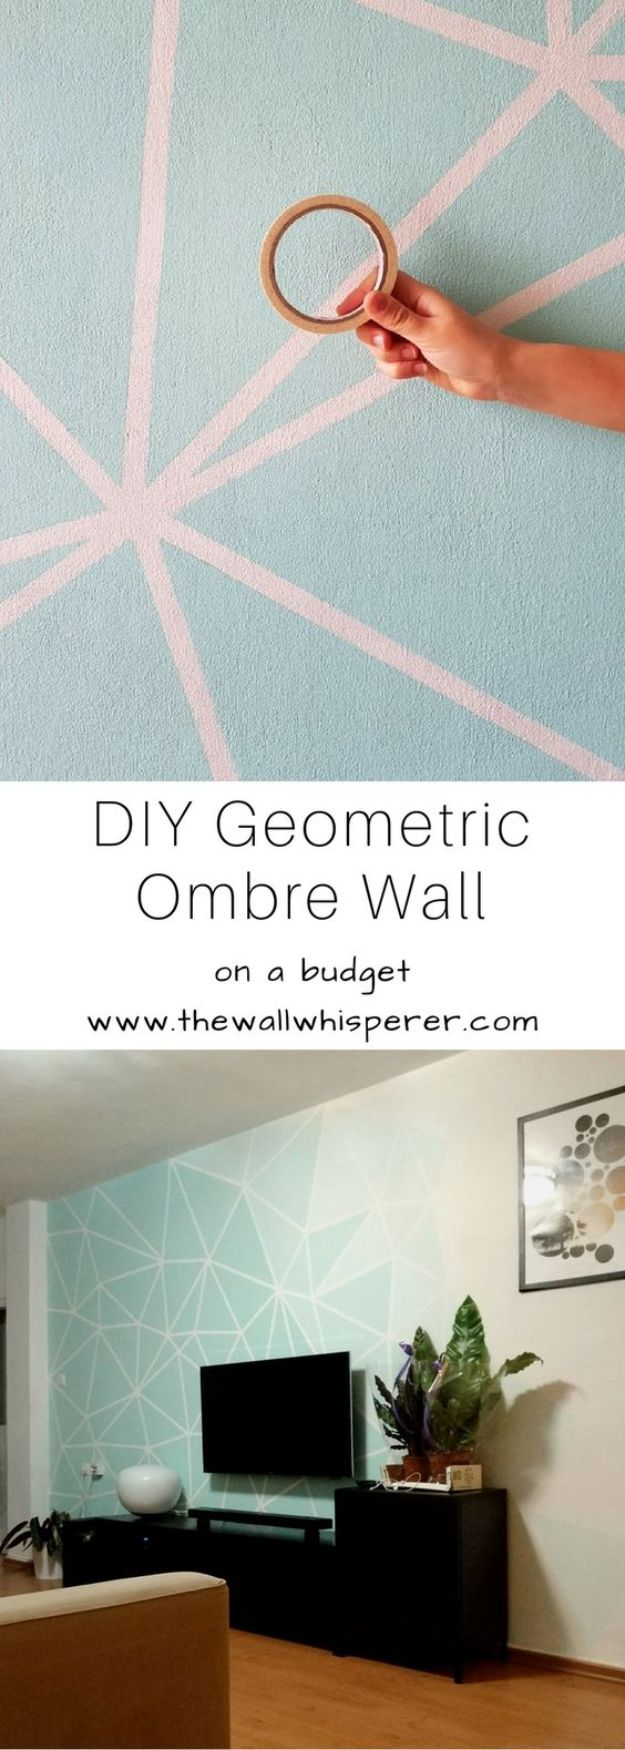 Cheap DIY Living Room Decor Ideas - DIY Geometric Wallpaper - Cool Modern, Rustic Creative Farmhouse Home Decor On A Budget - Do It Yourself Coffee Tables, Wall Art, Rugs, Pillows and Chairs. Step by Step Tutorials and Instructions #diydecor #livingroom #decorideas